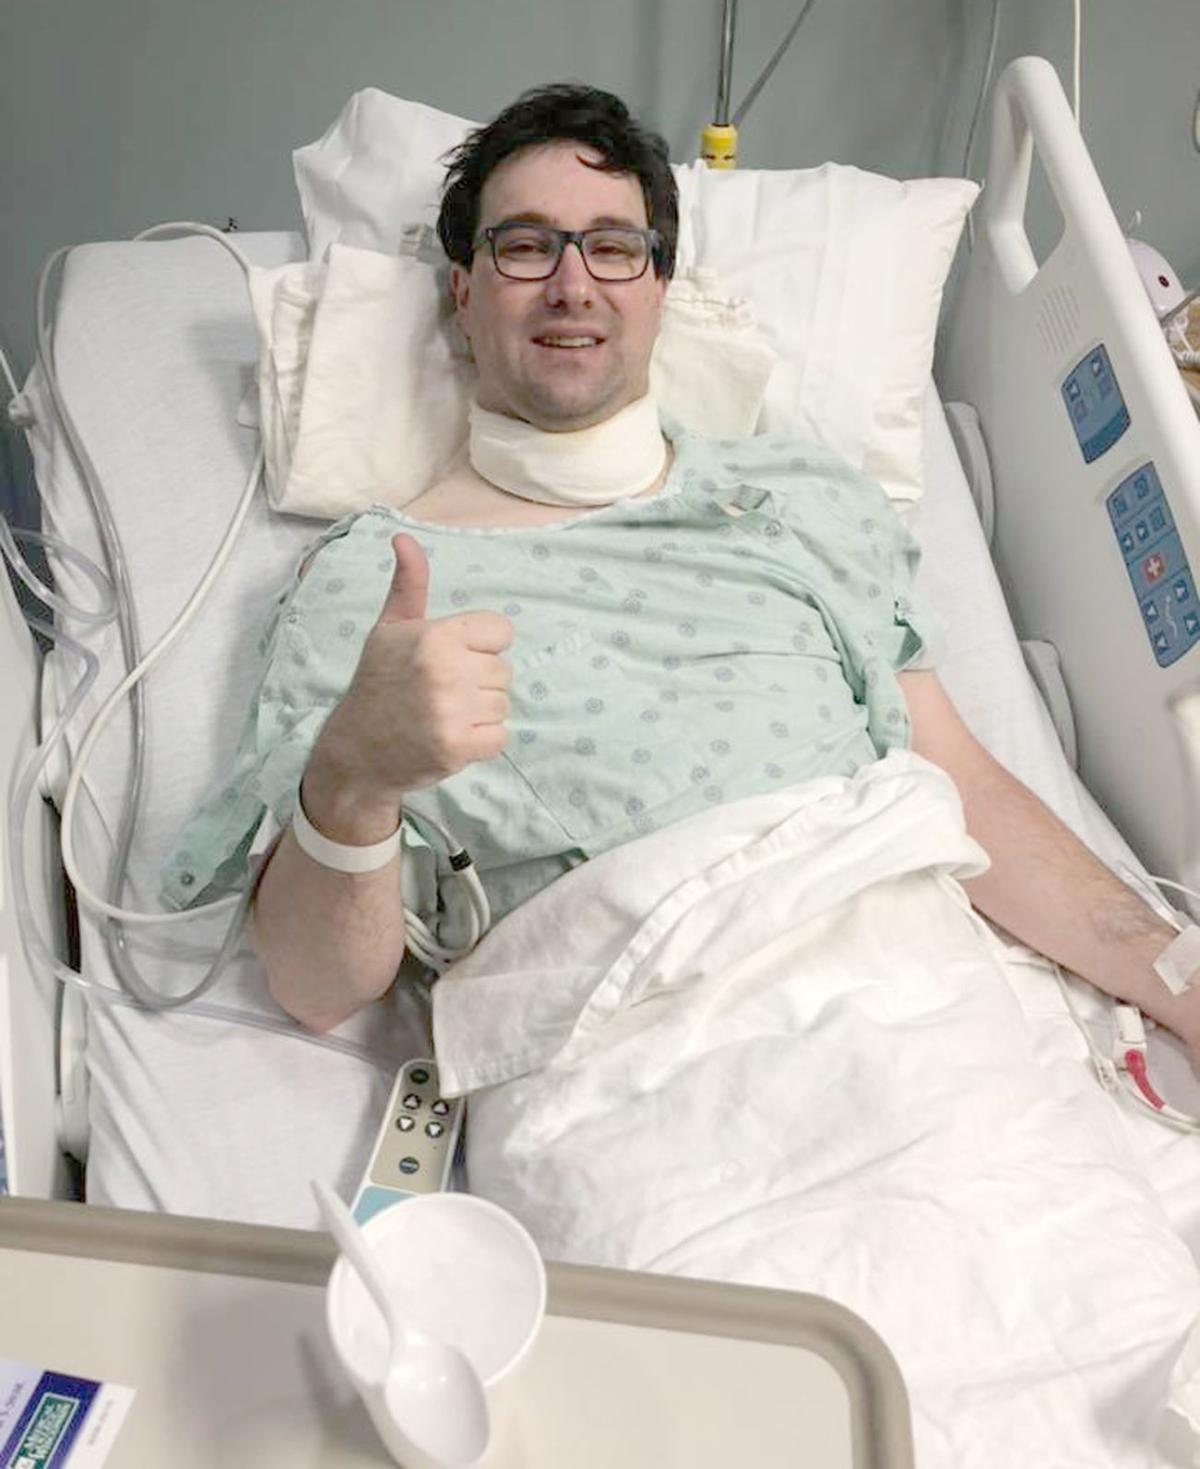 Flanagan after surgery